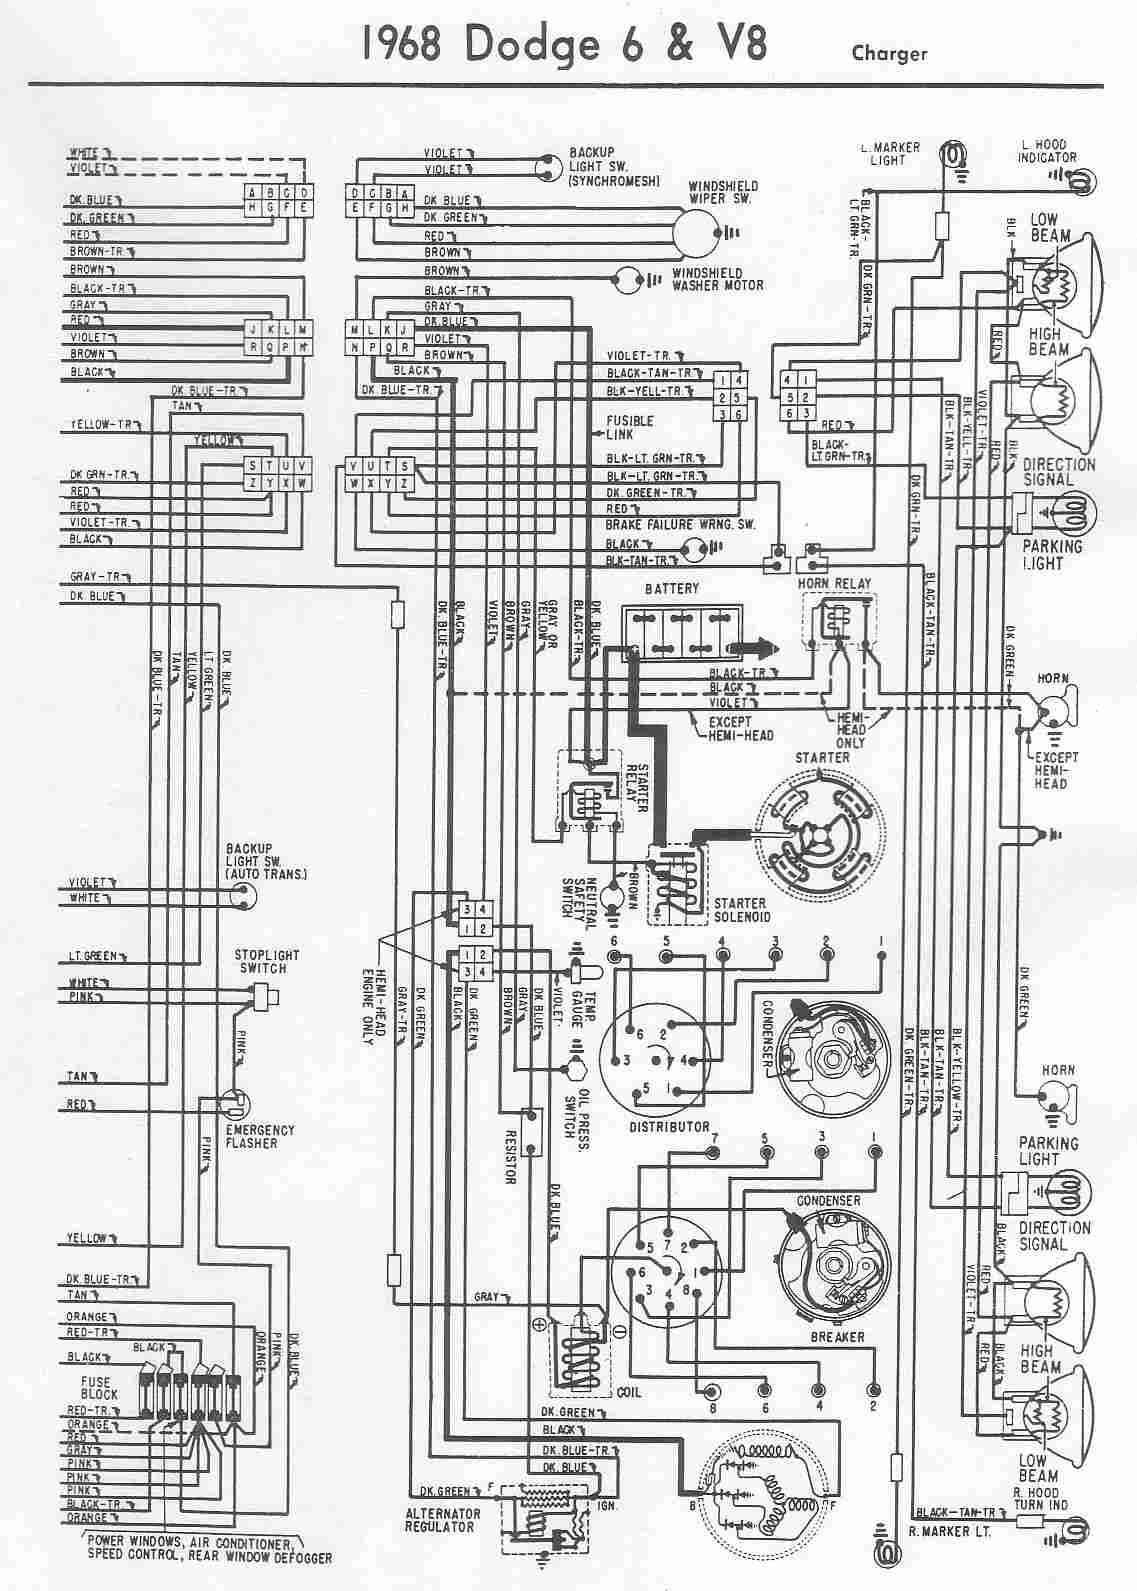 Dodge Car Manuals Wiring Diagrams Pdf Fault Codes Automobile Electrical Download